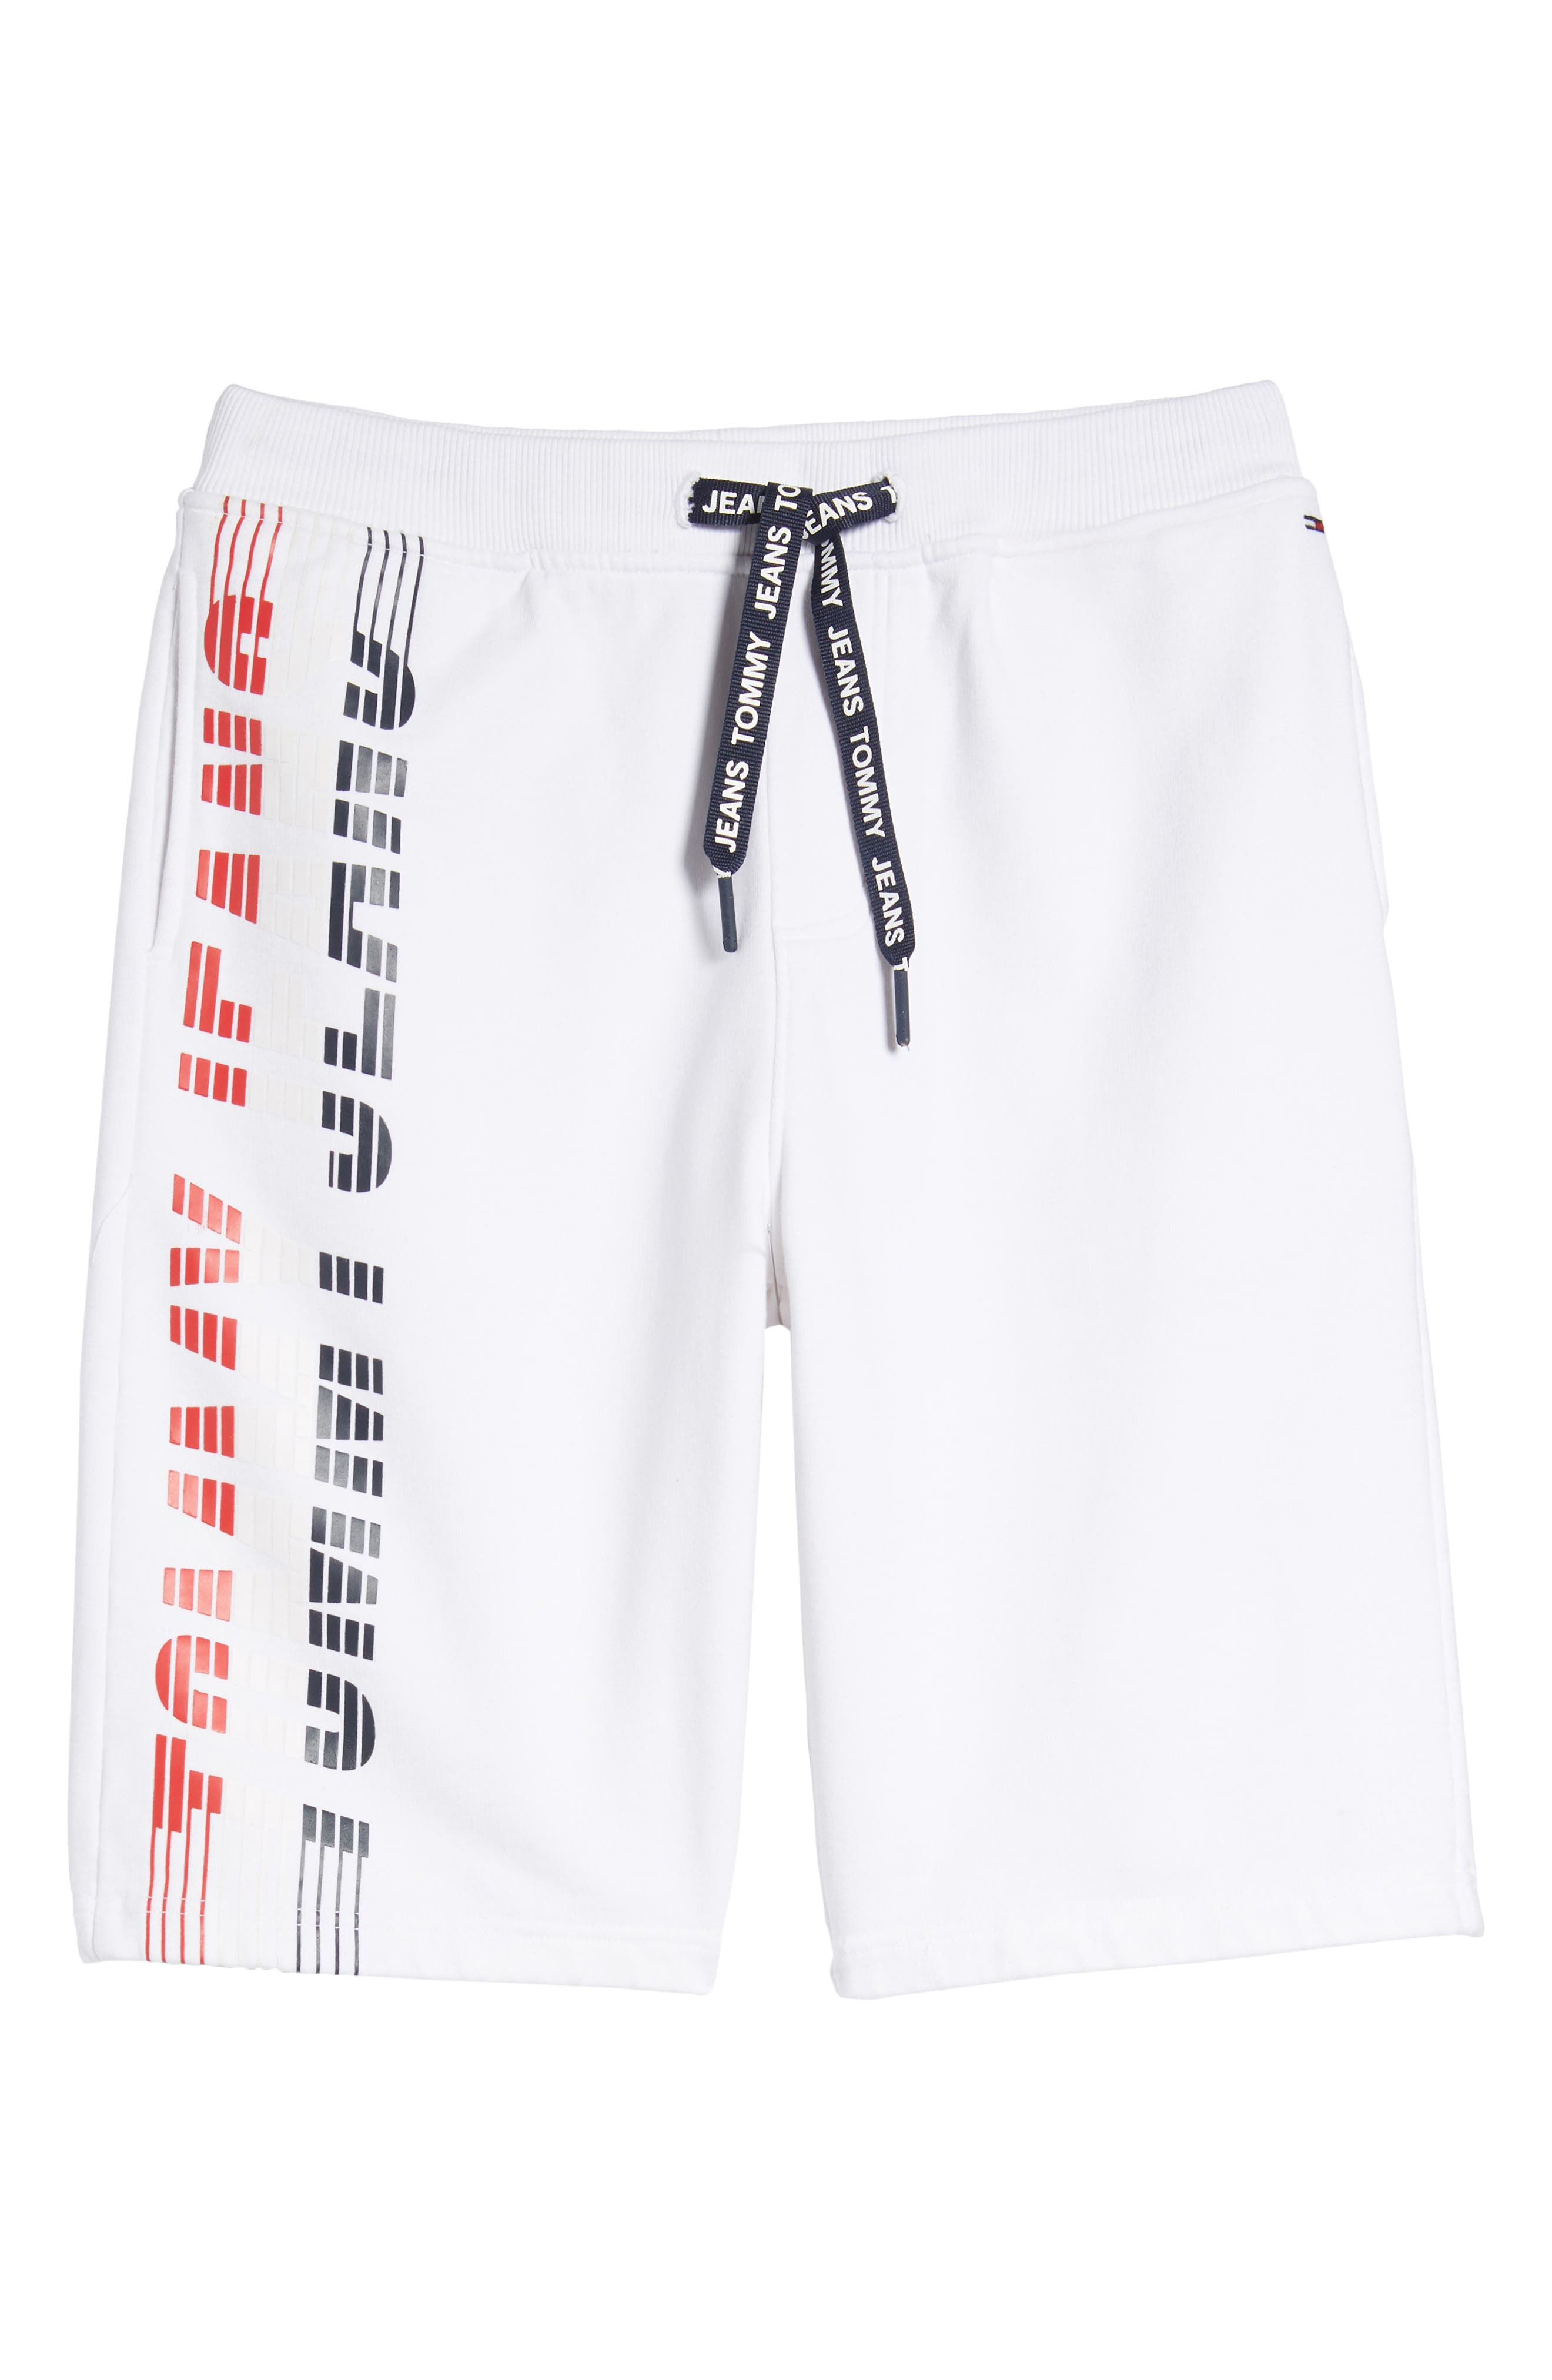 Vintage Graphic Basketball Shorts,                             Alternate thumbnail 6, color,                             Classic White